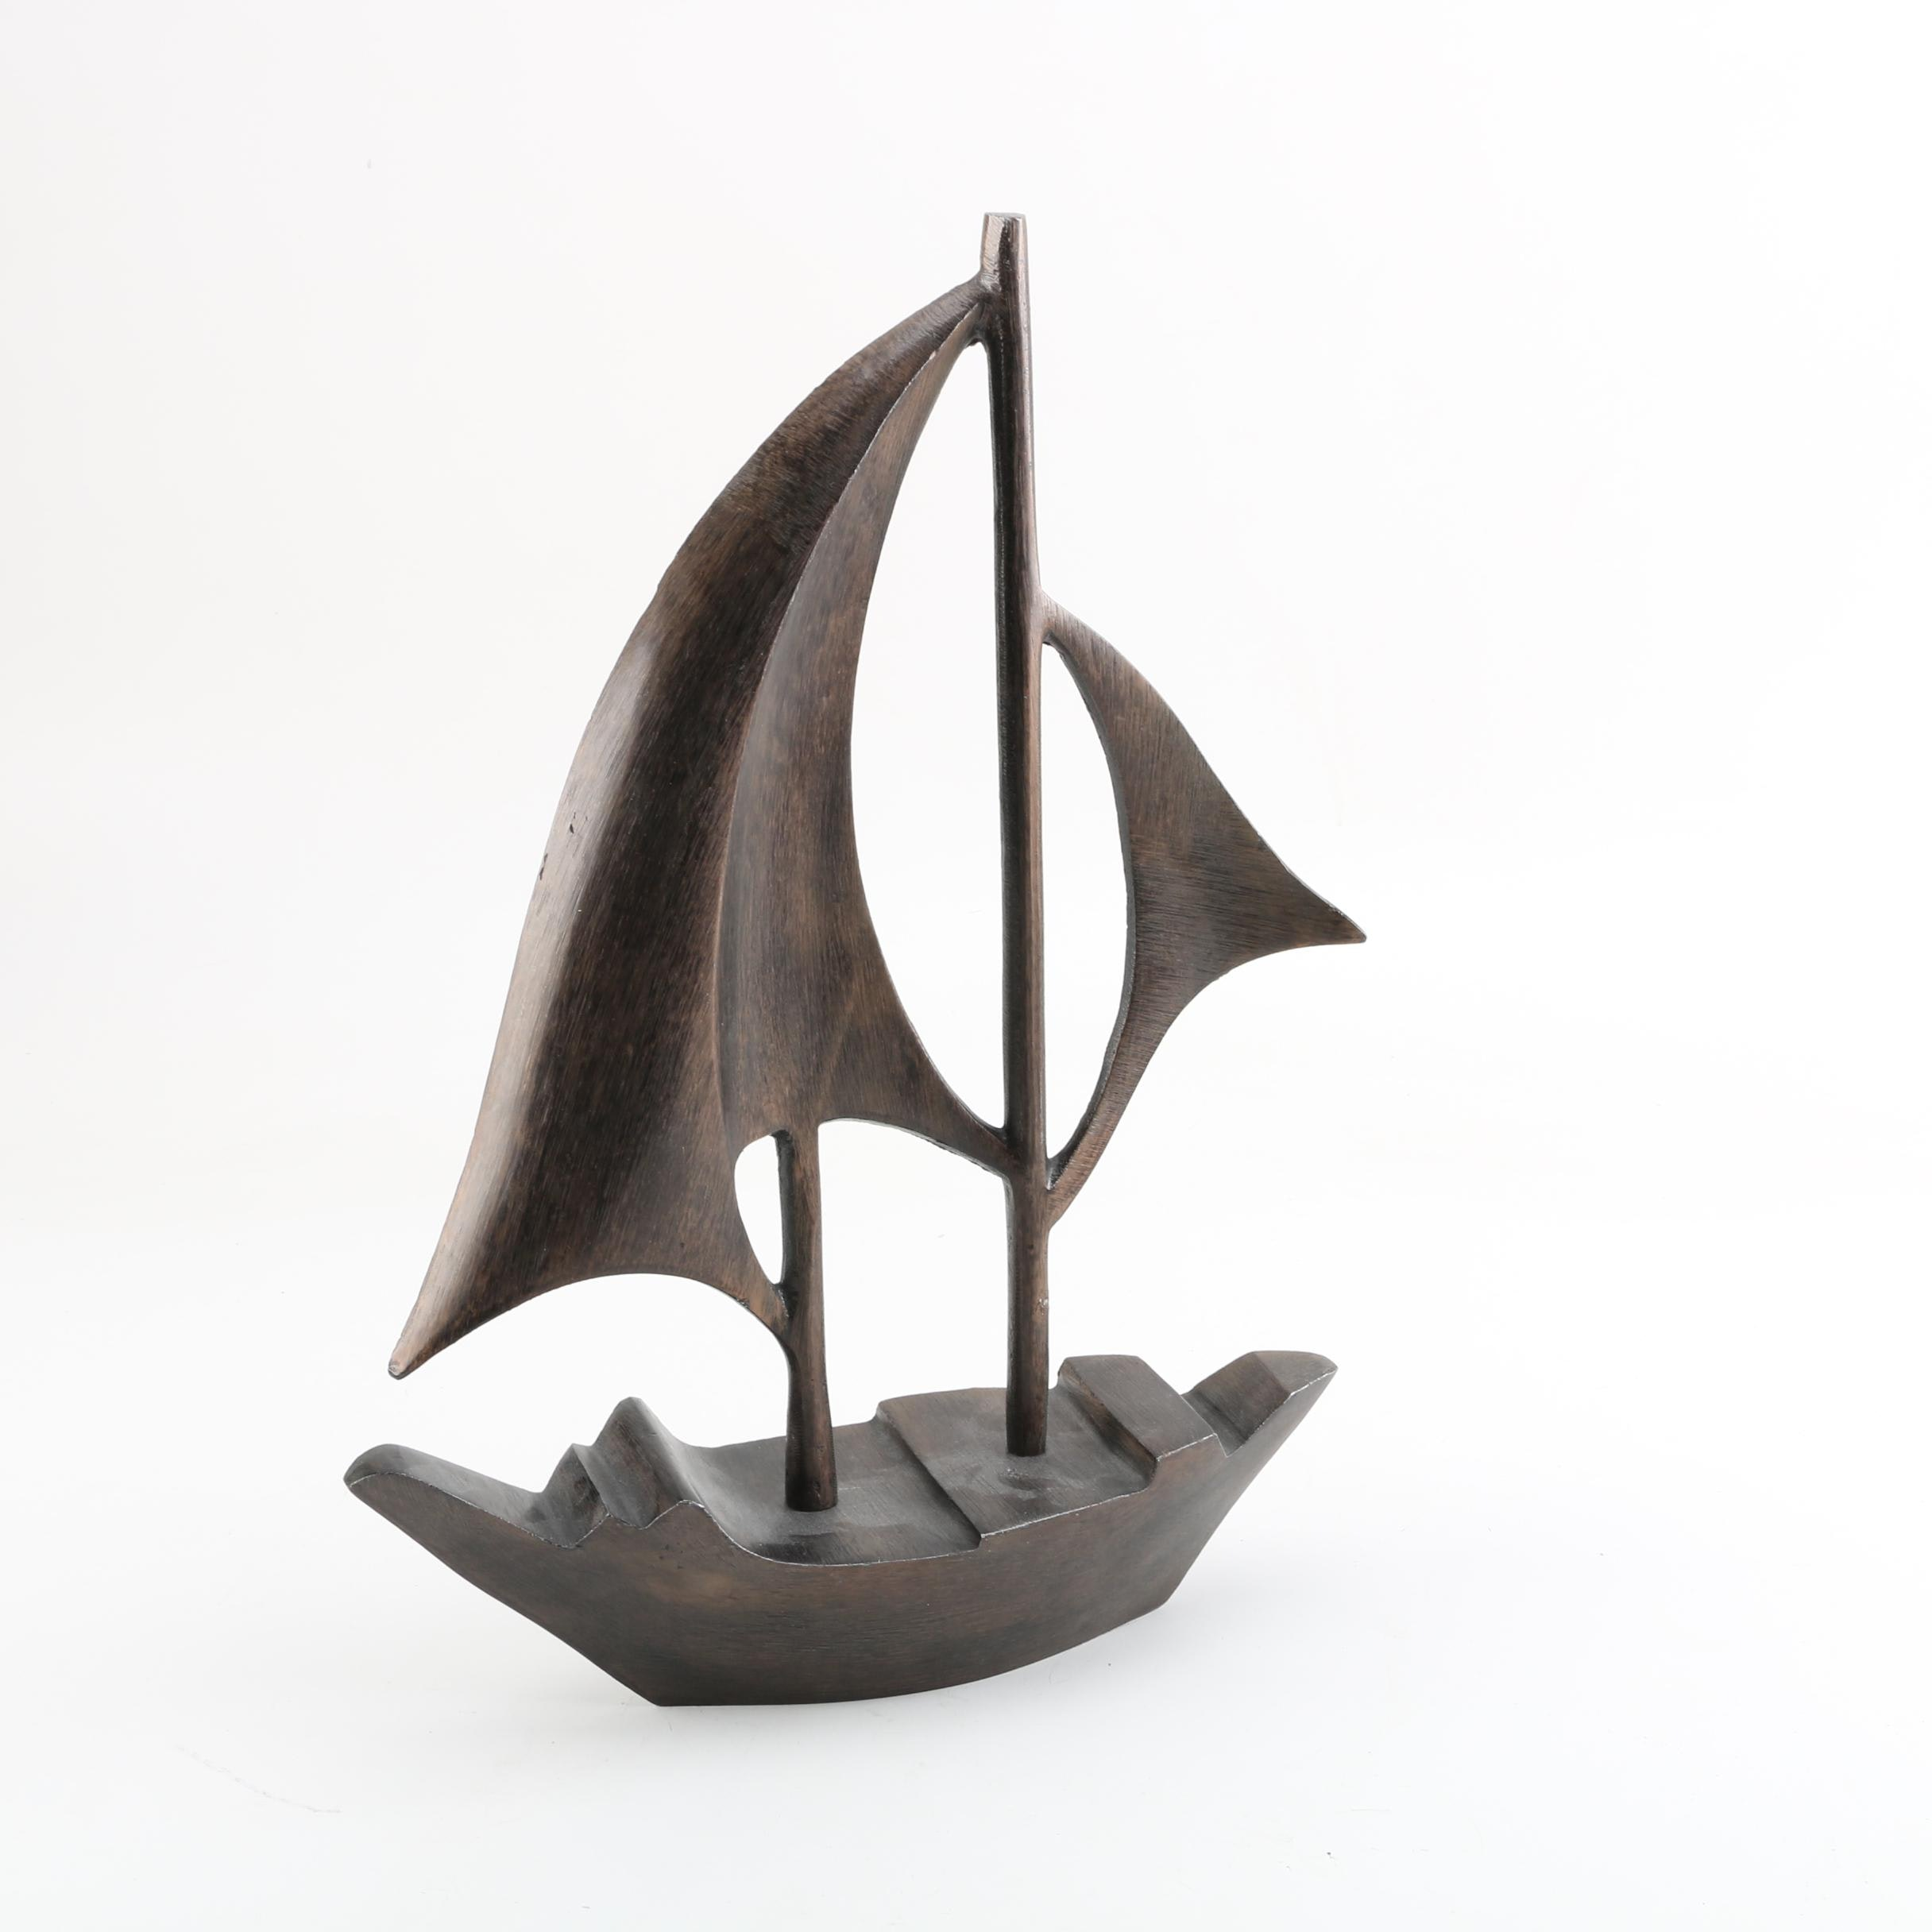 Metal Sailboat Figurine